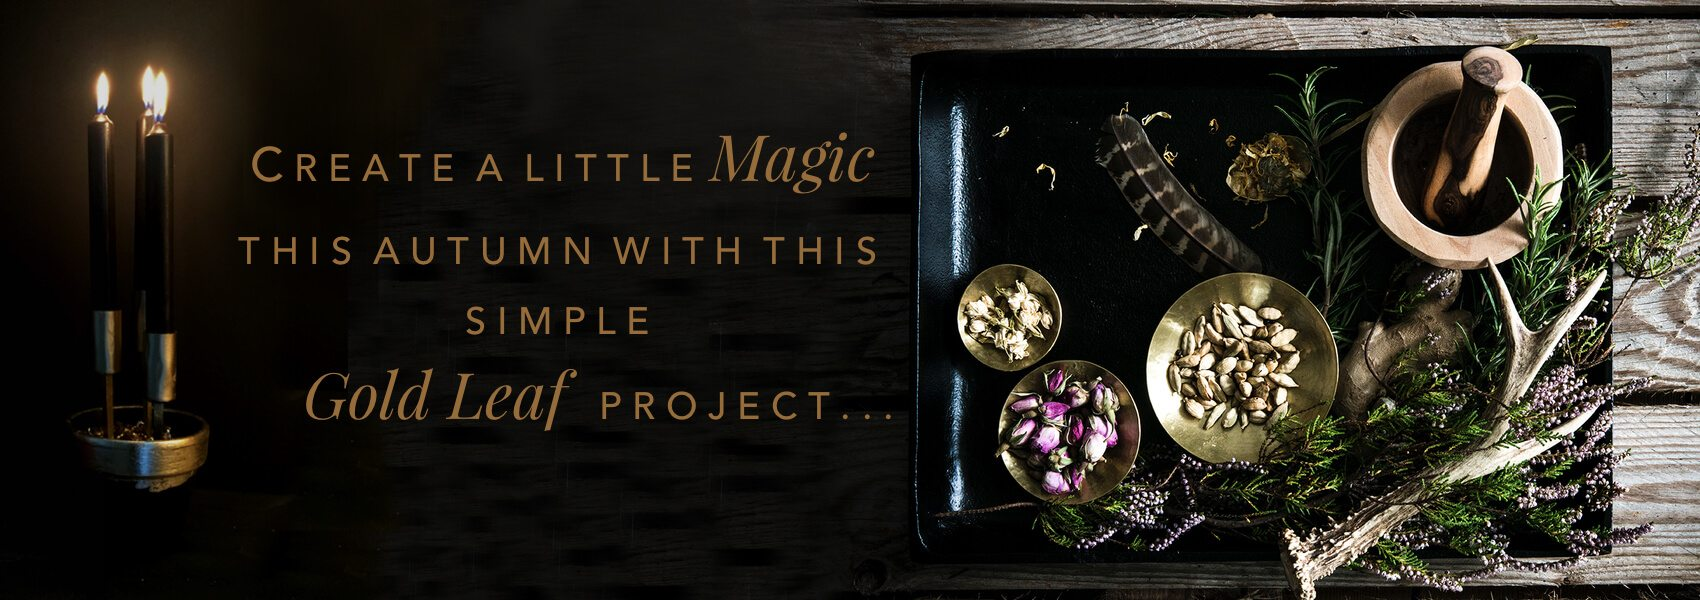 Create A Little Magic the Autumn with this simple Gold Leaf project